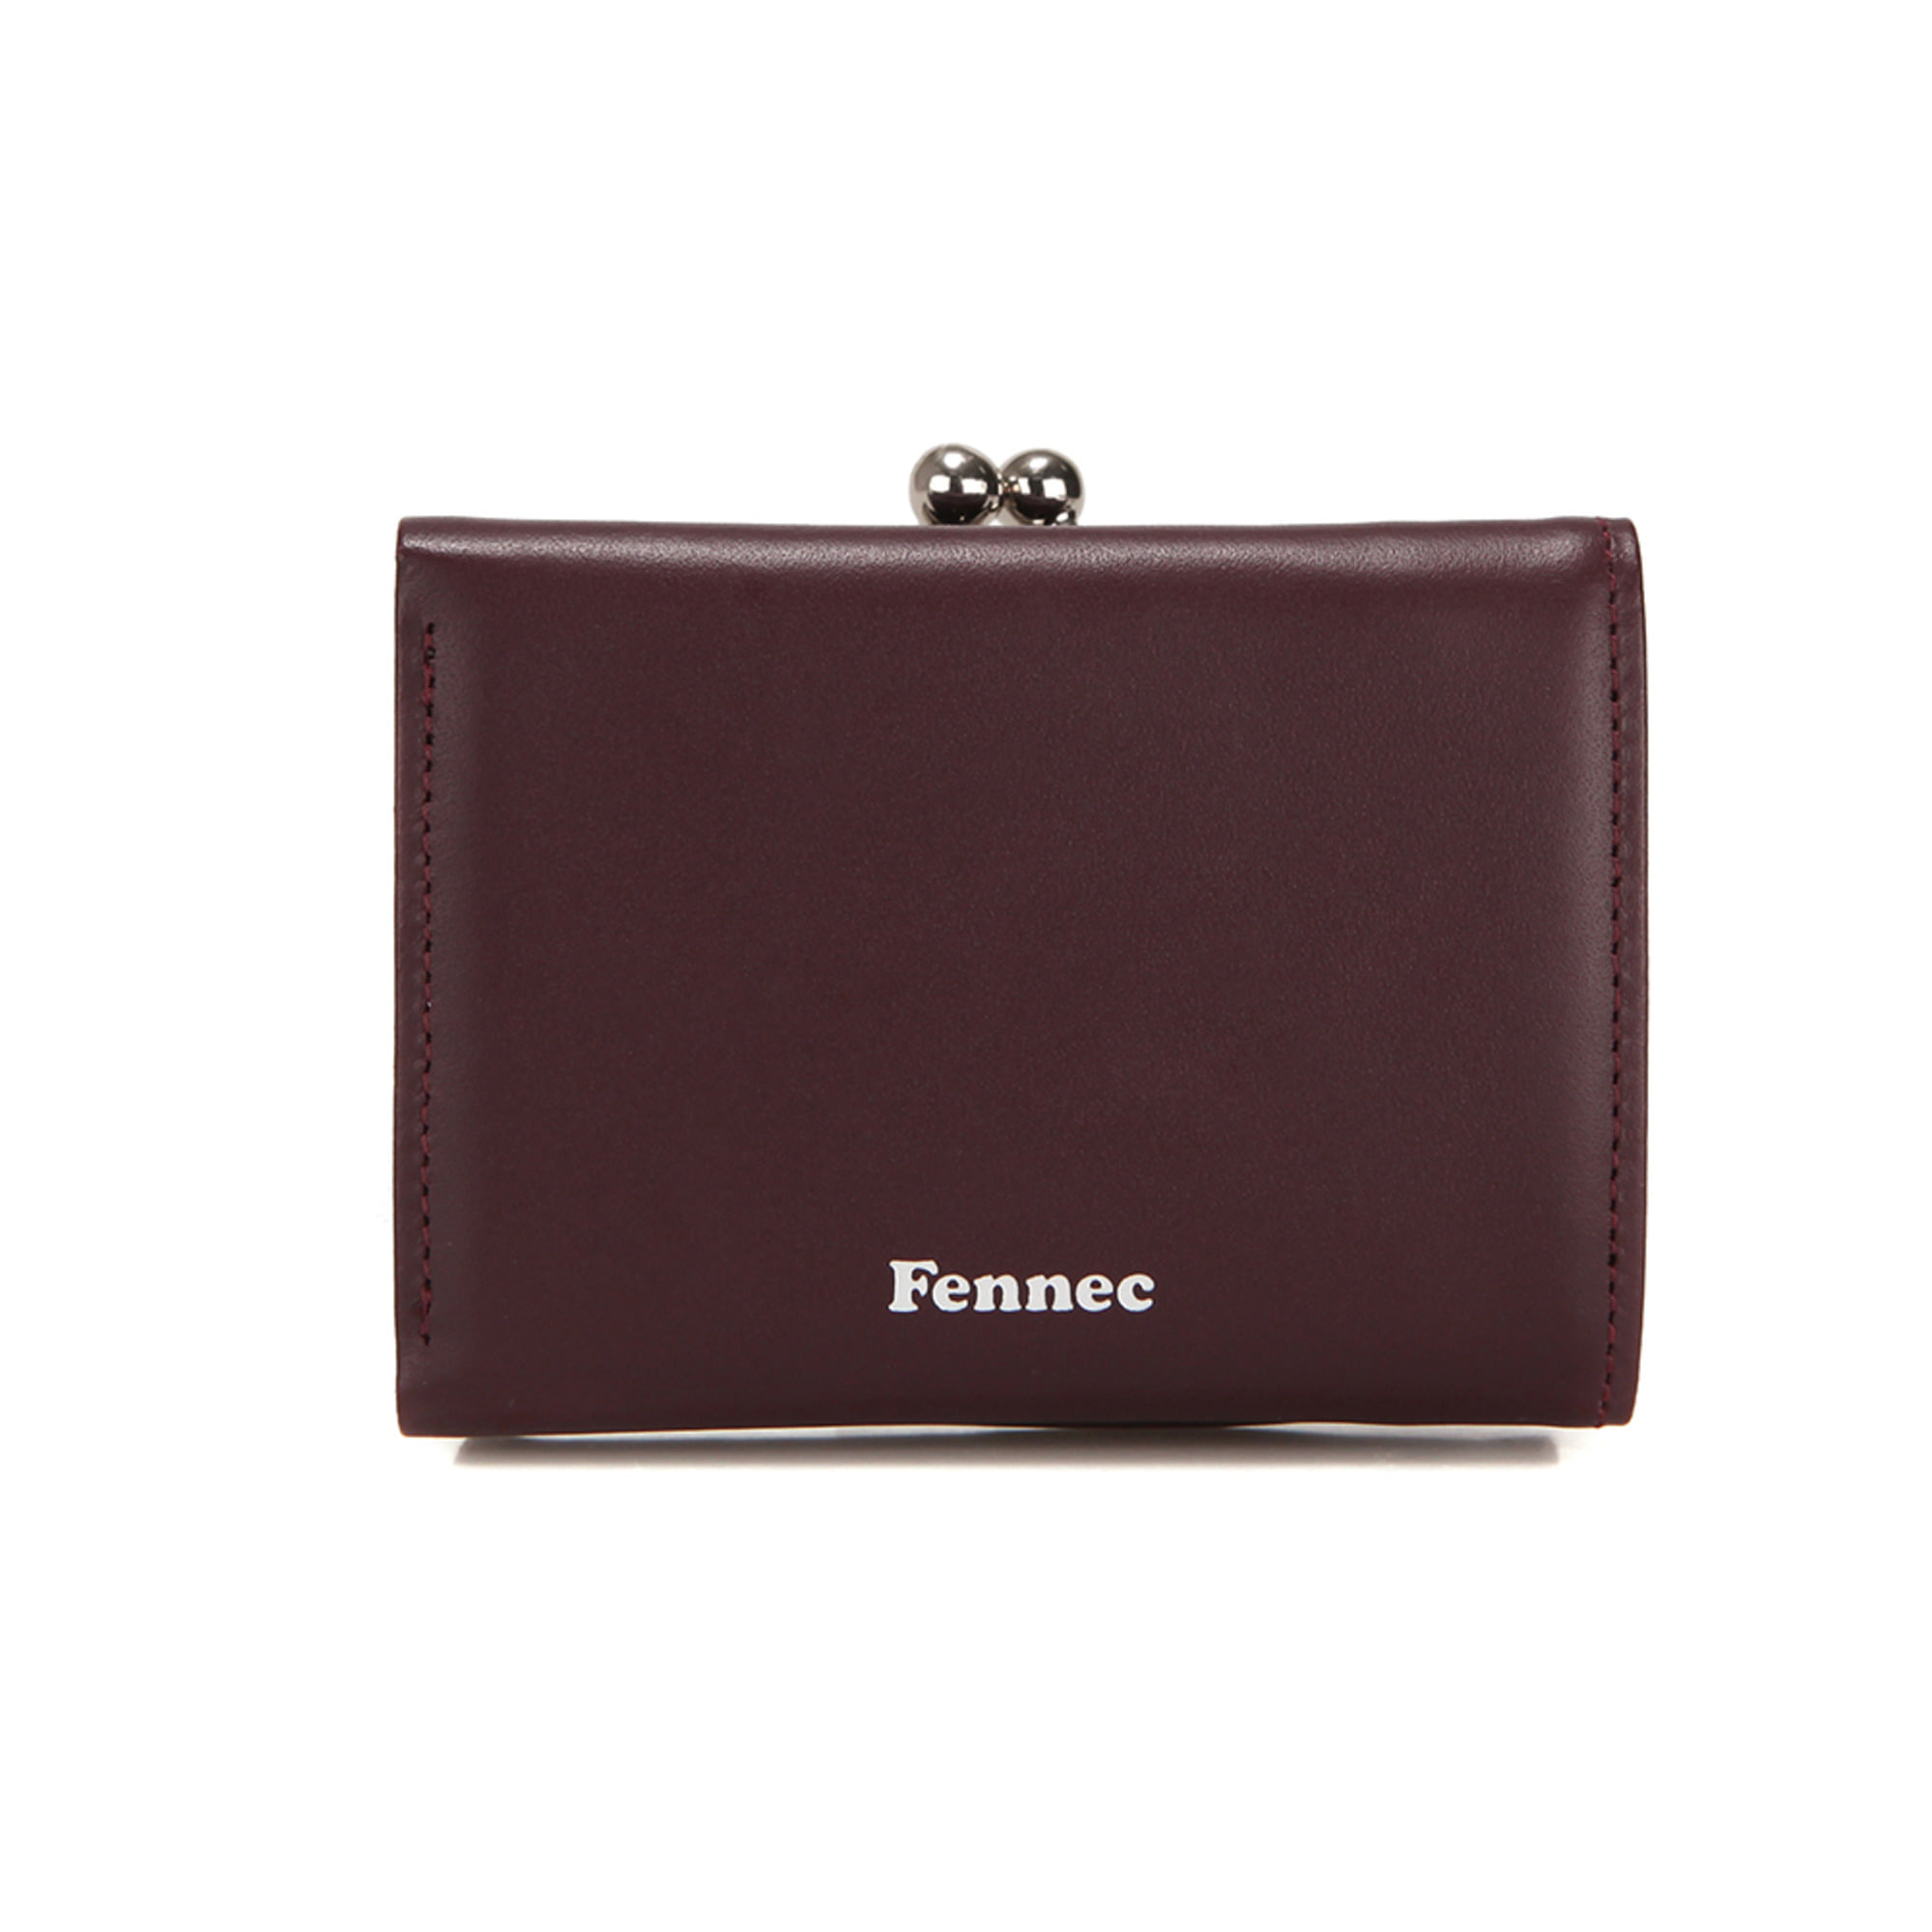 (SCRATCH SALE) FRAME TRIPLE WALLET - WINE